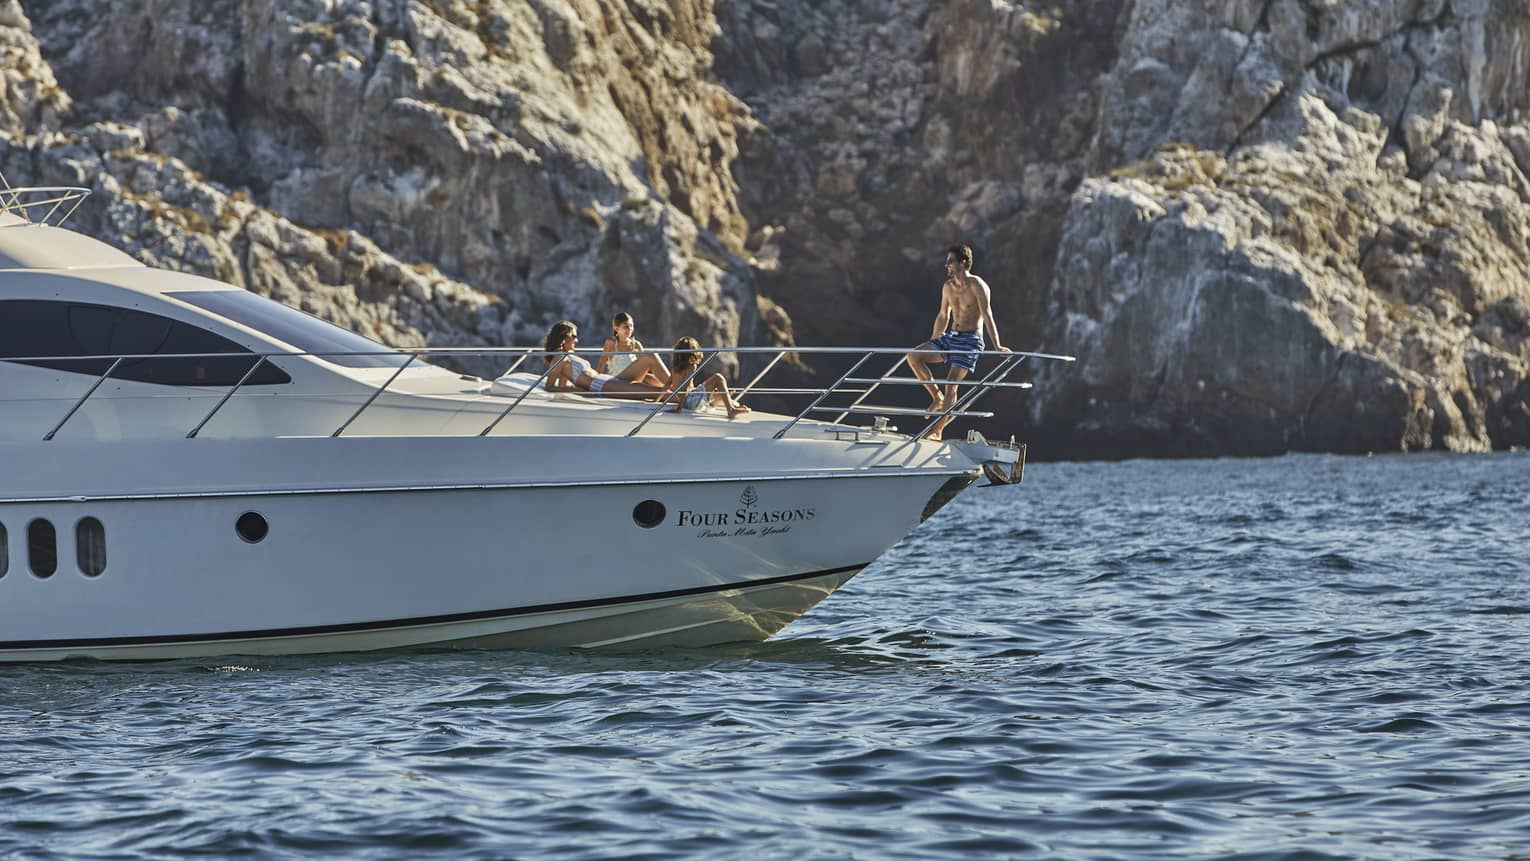 People relax on front of yacht sailing below large rocky cliff